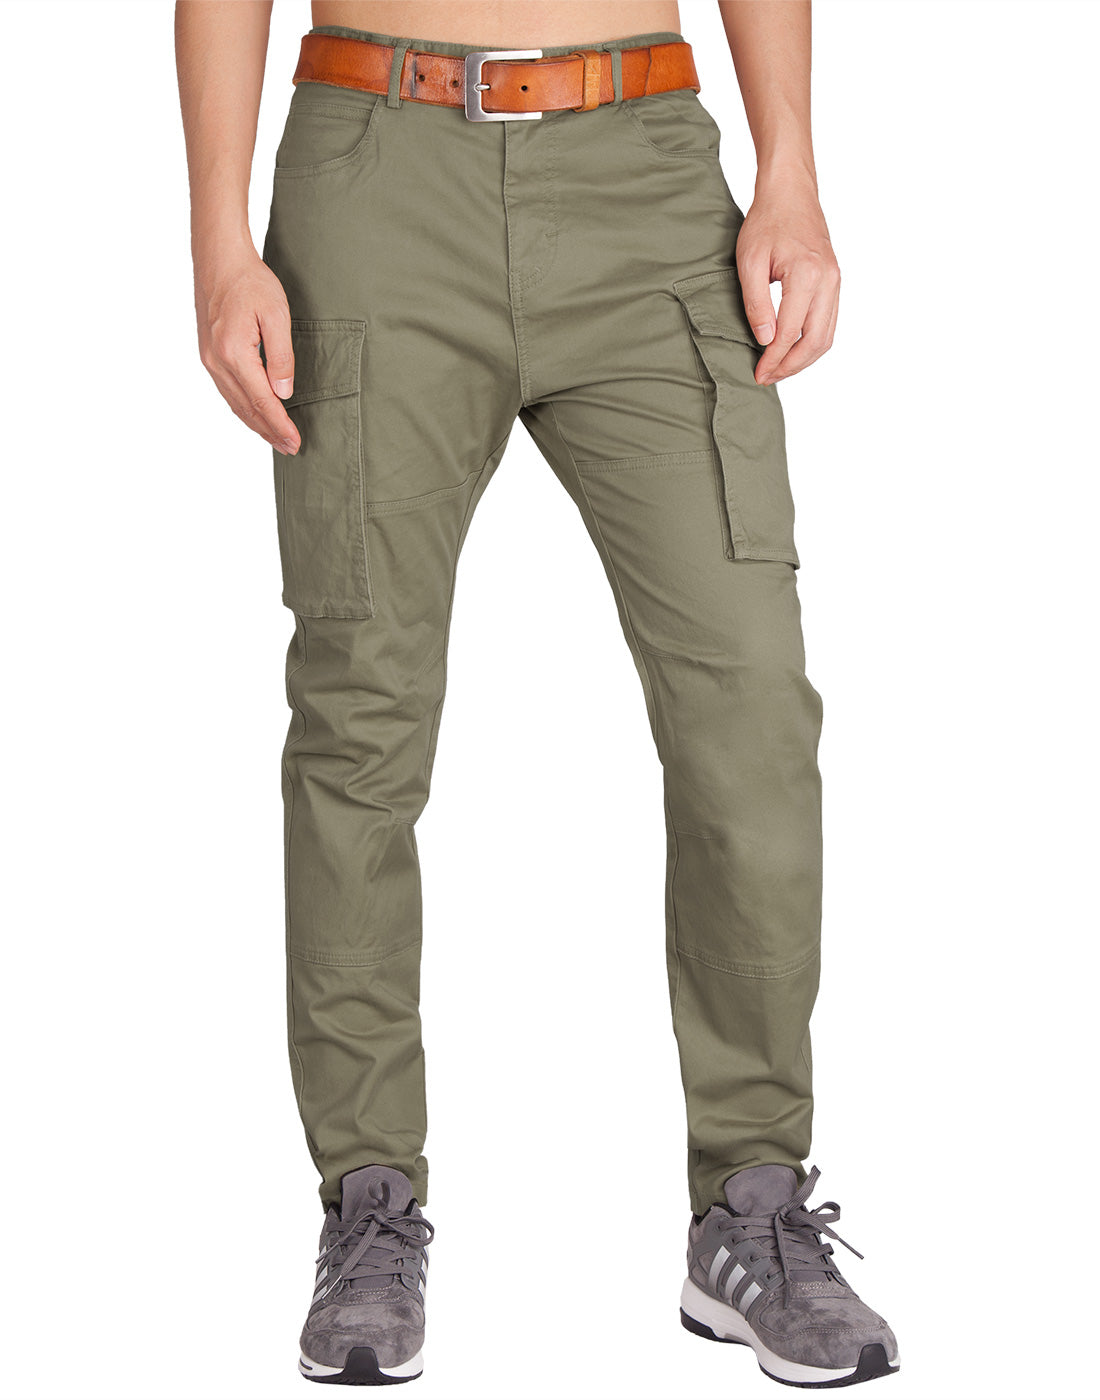 Man Cargo Pants Grey Green - italymorn